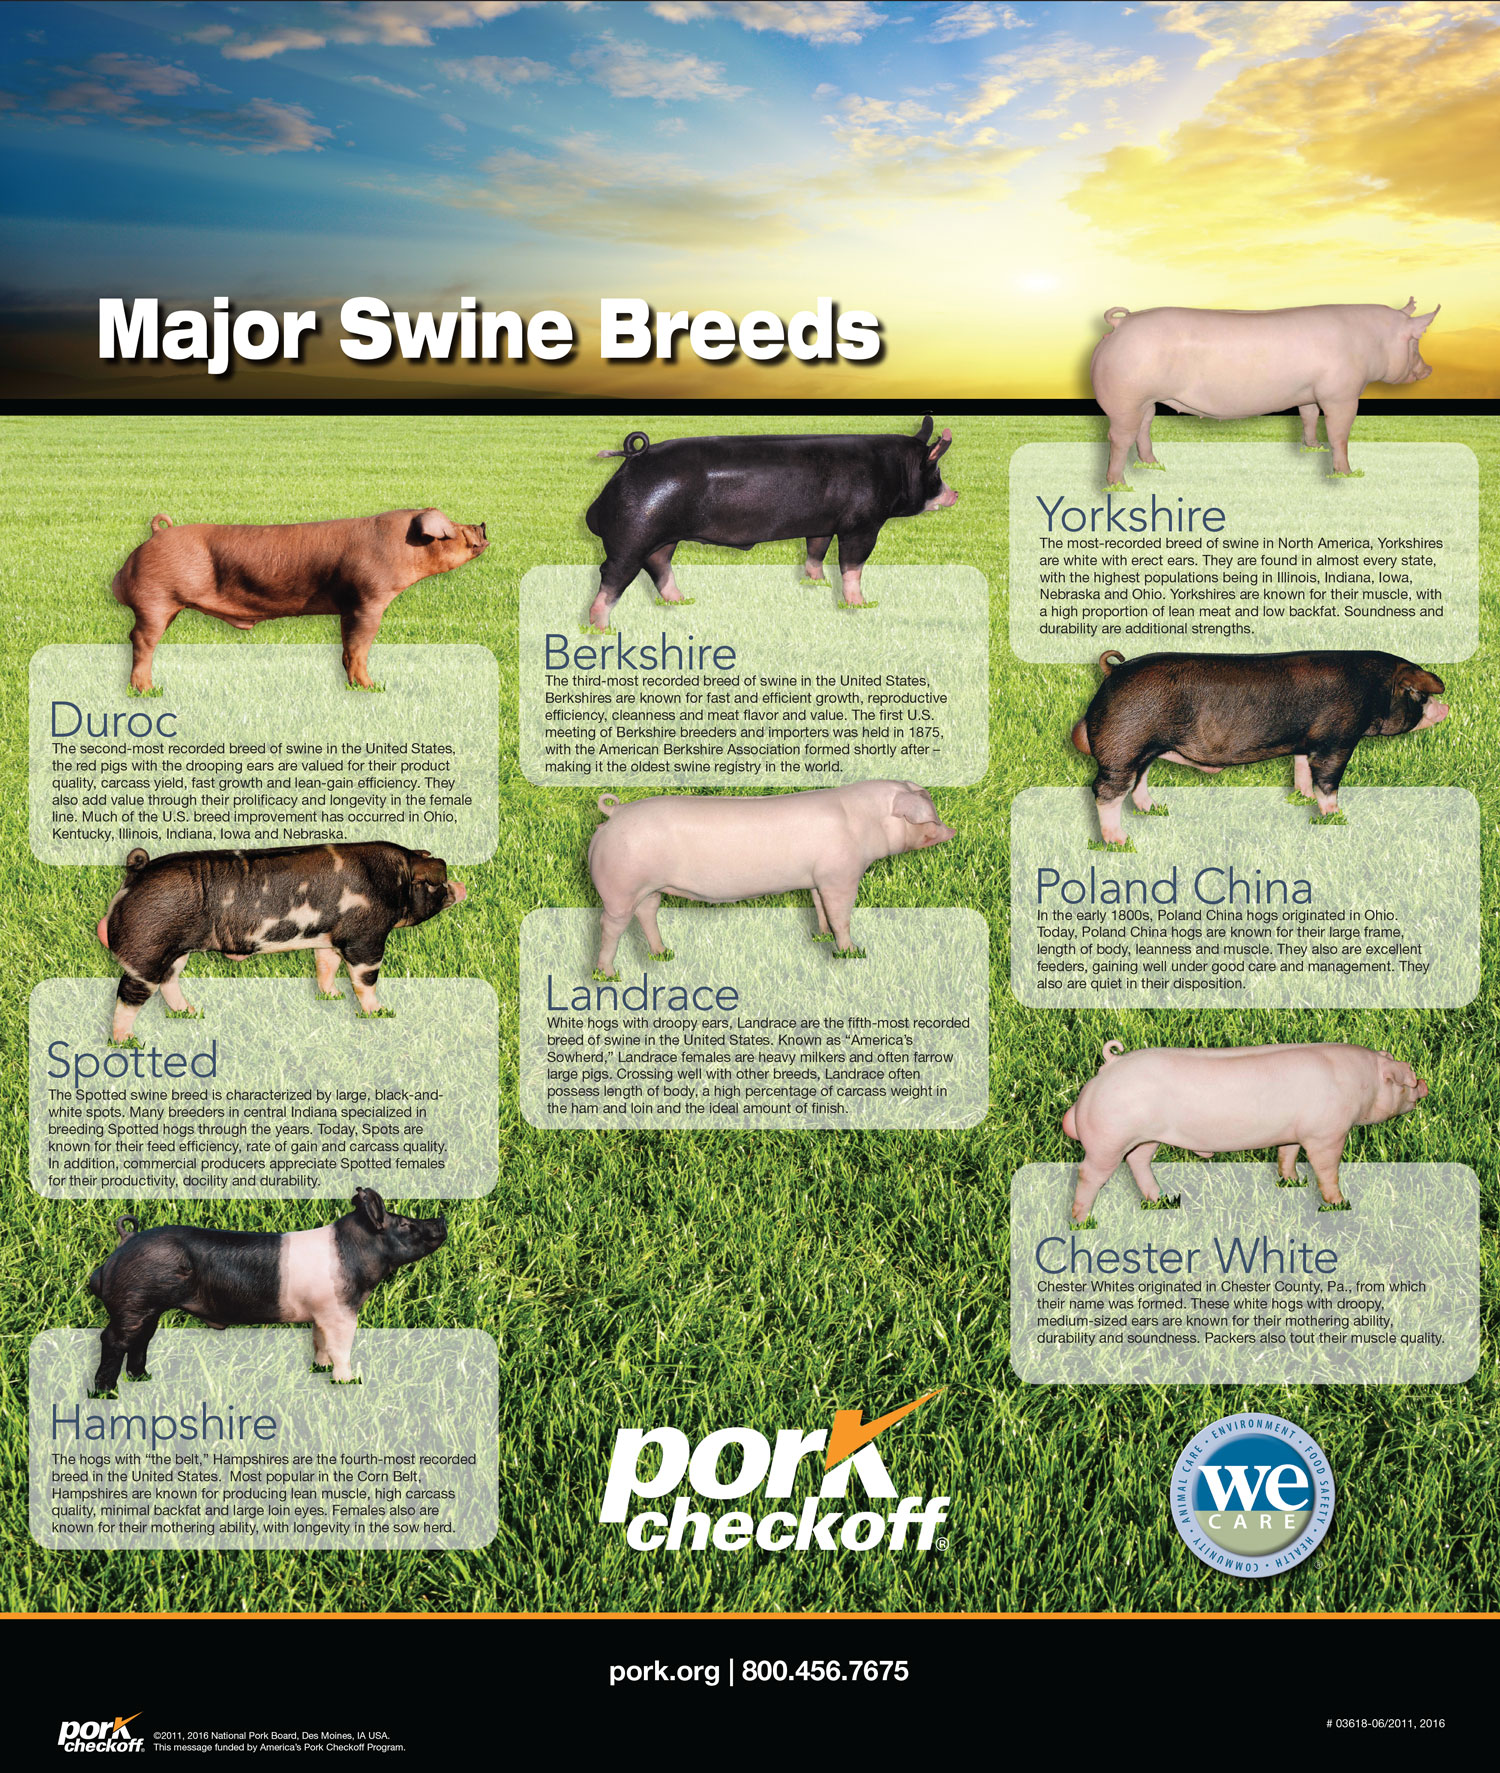 Major Swine Breeds - Pork Checkoff